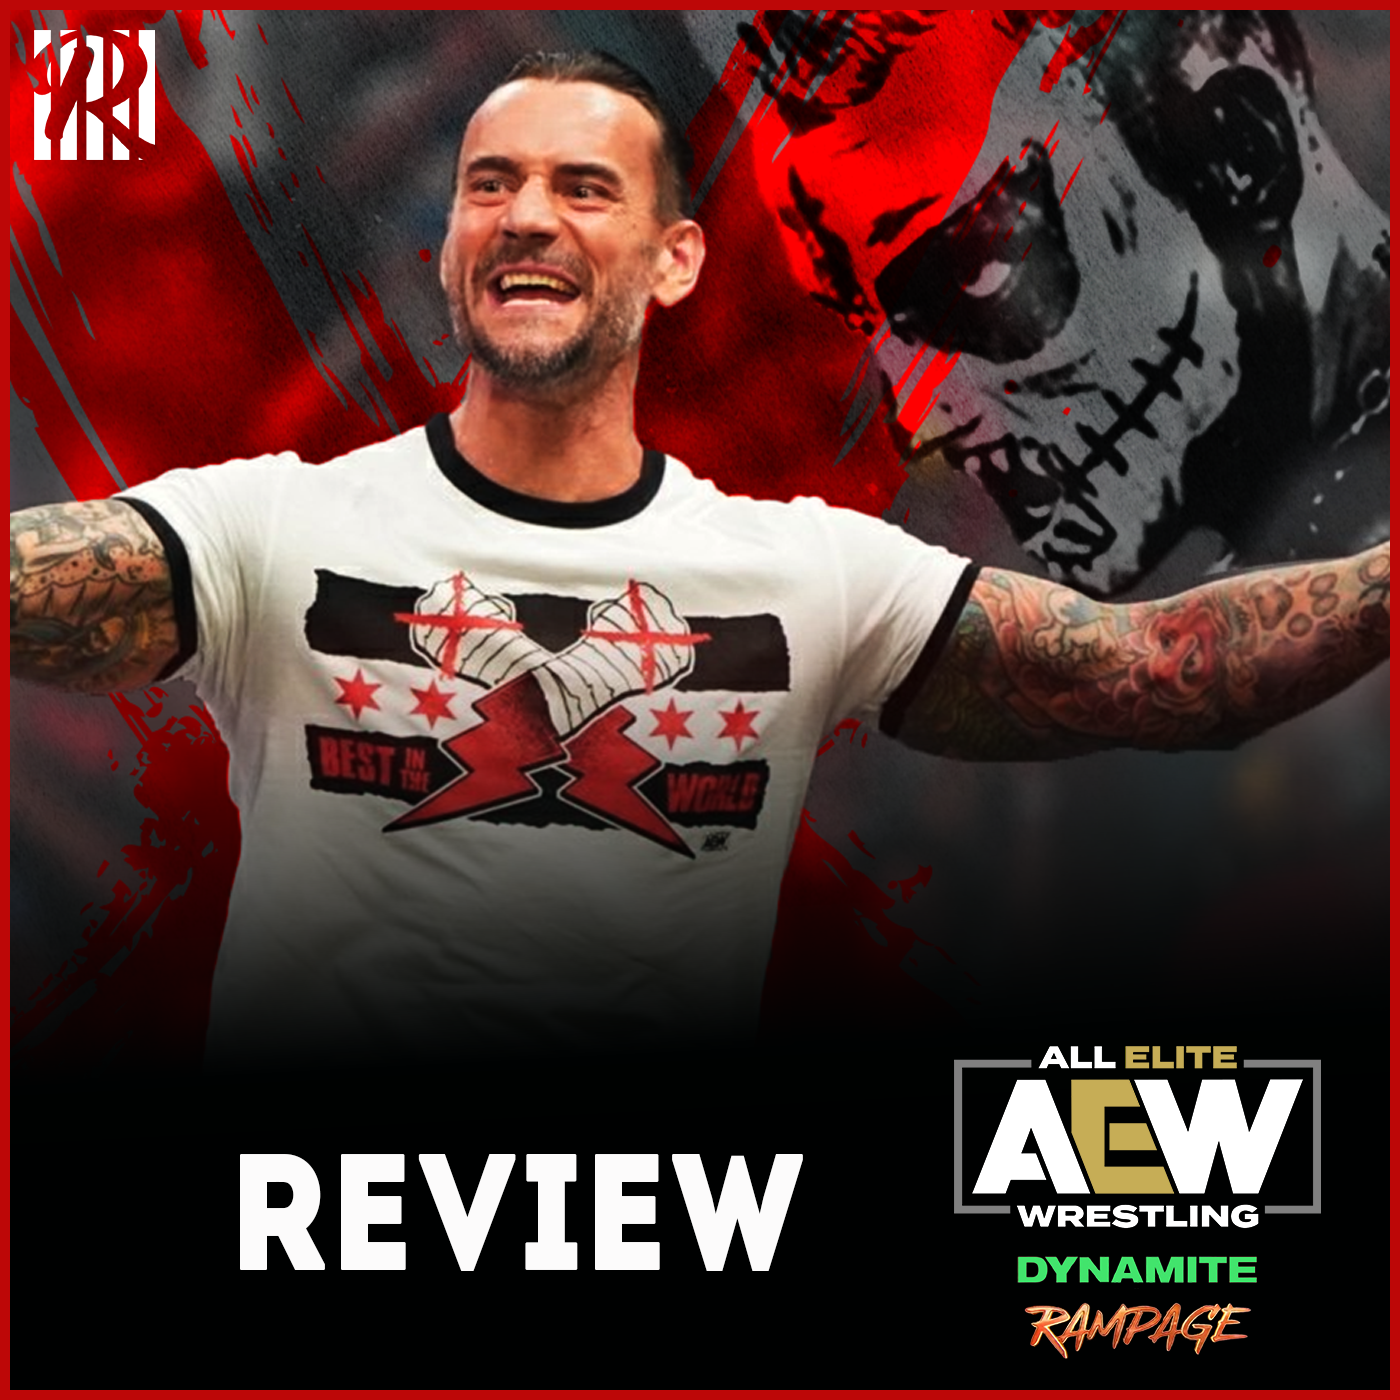 REVIEW AEW DYNAMITE #99 & Rampage : CM PUNK IS ALL ELITE